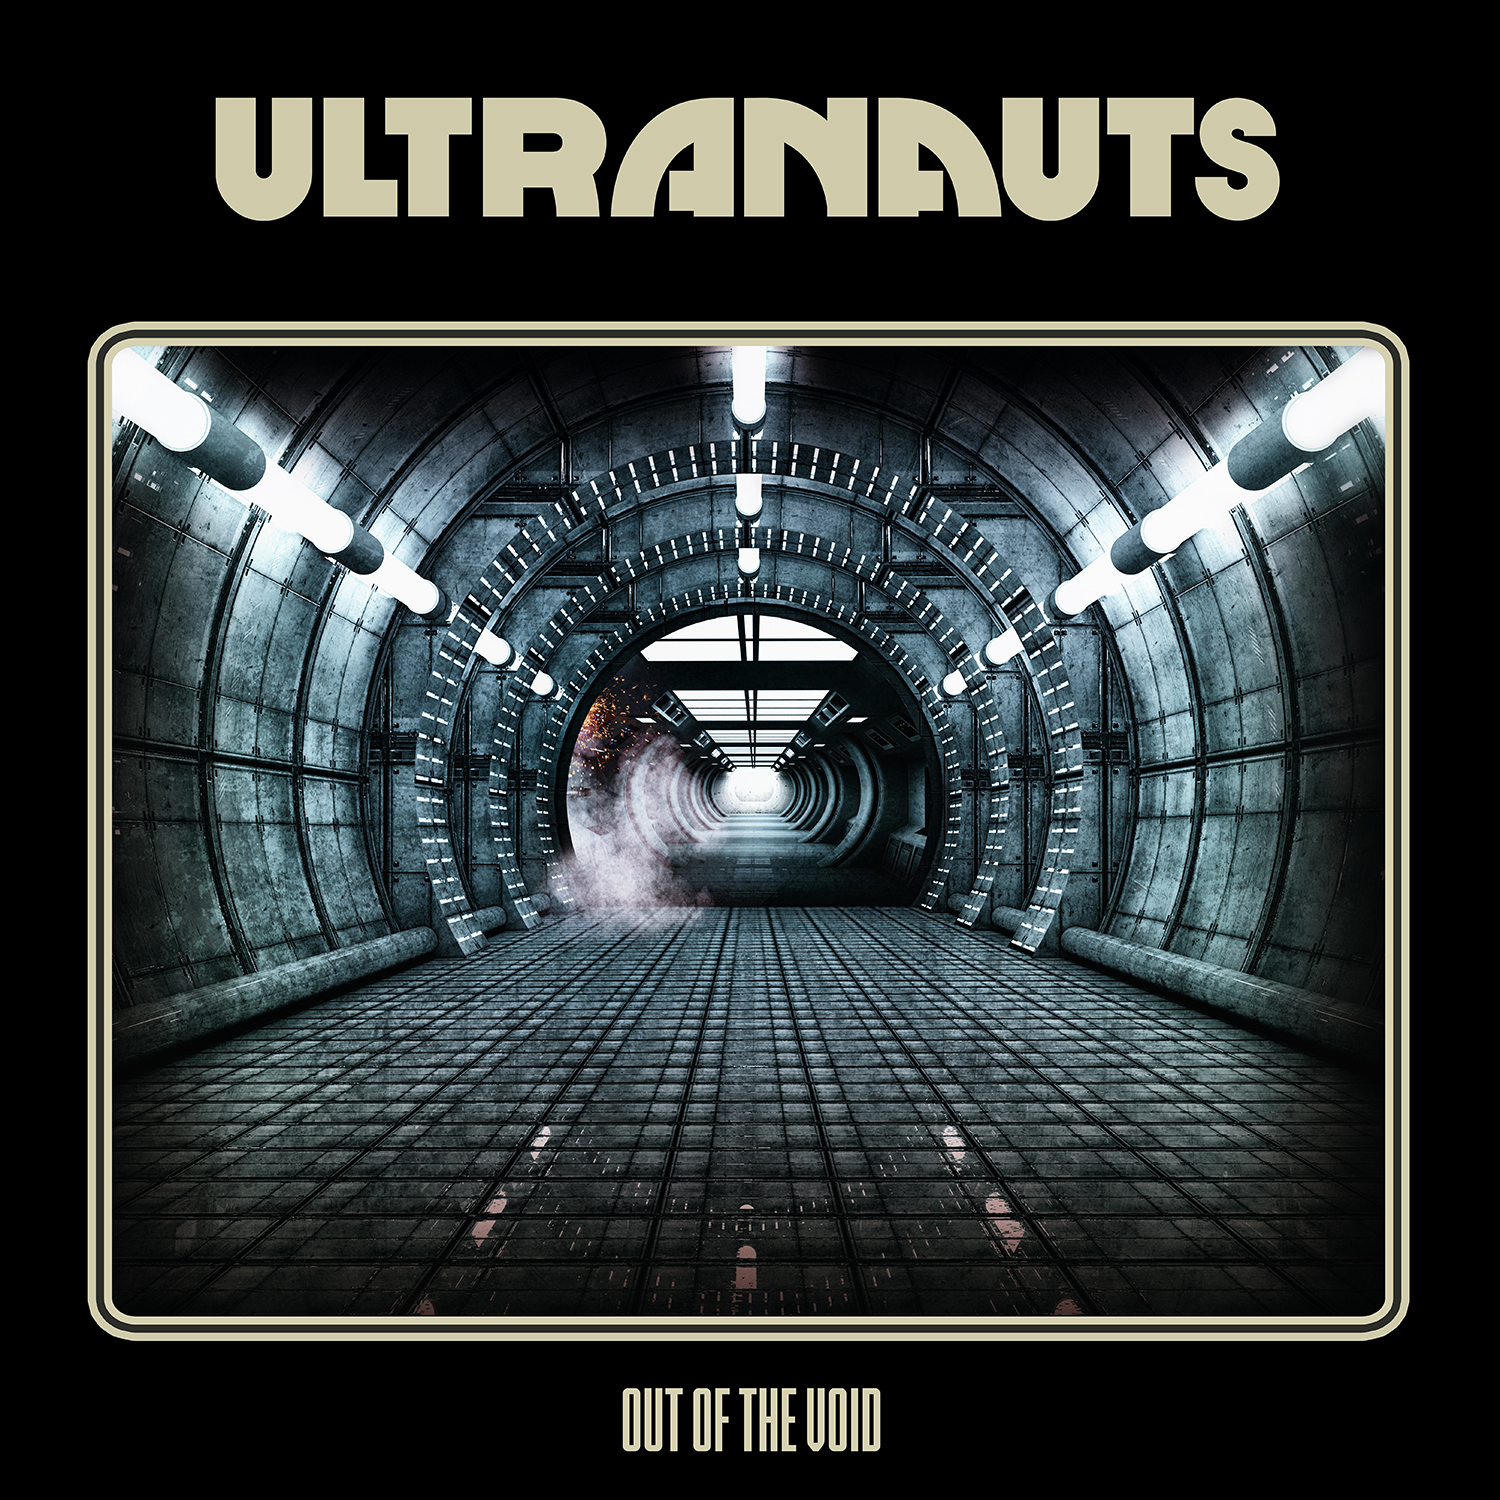 ULTRANAUTS - OUT OF THE VOID PSHOT.jpg